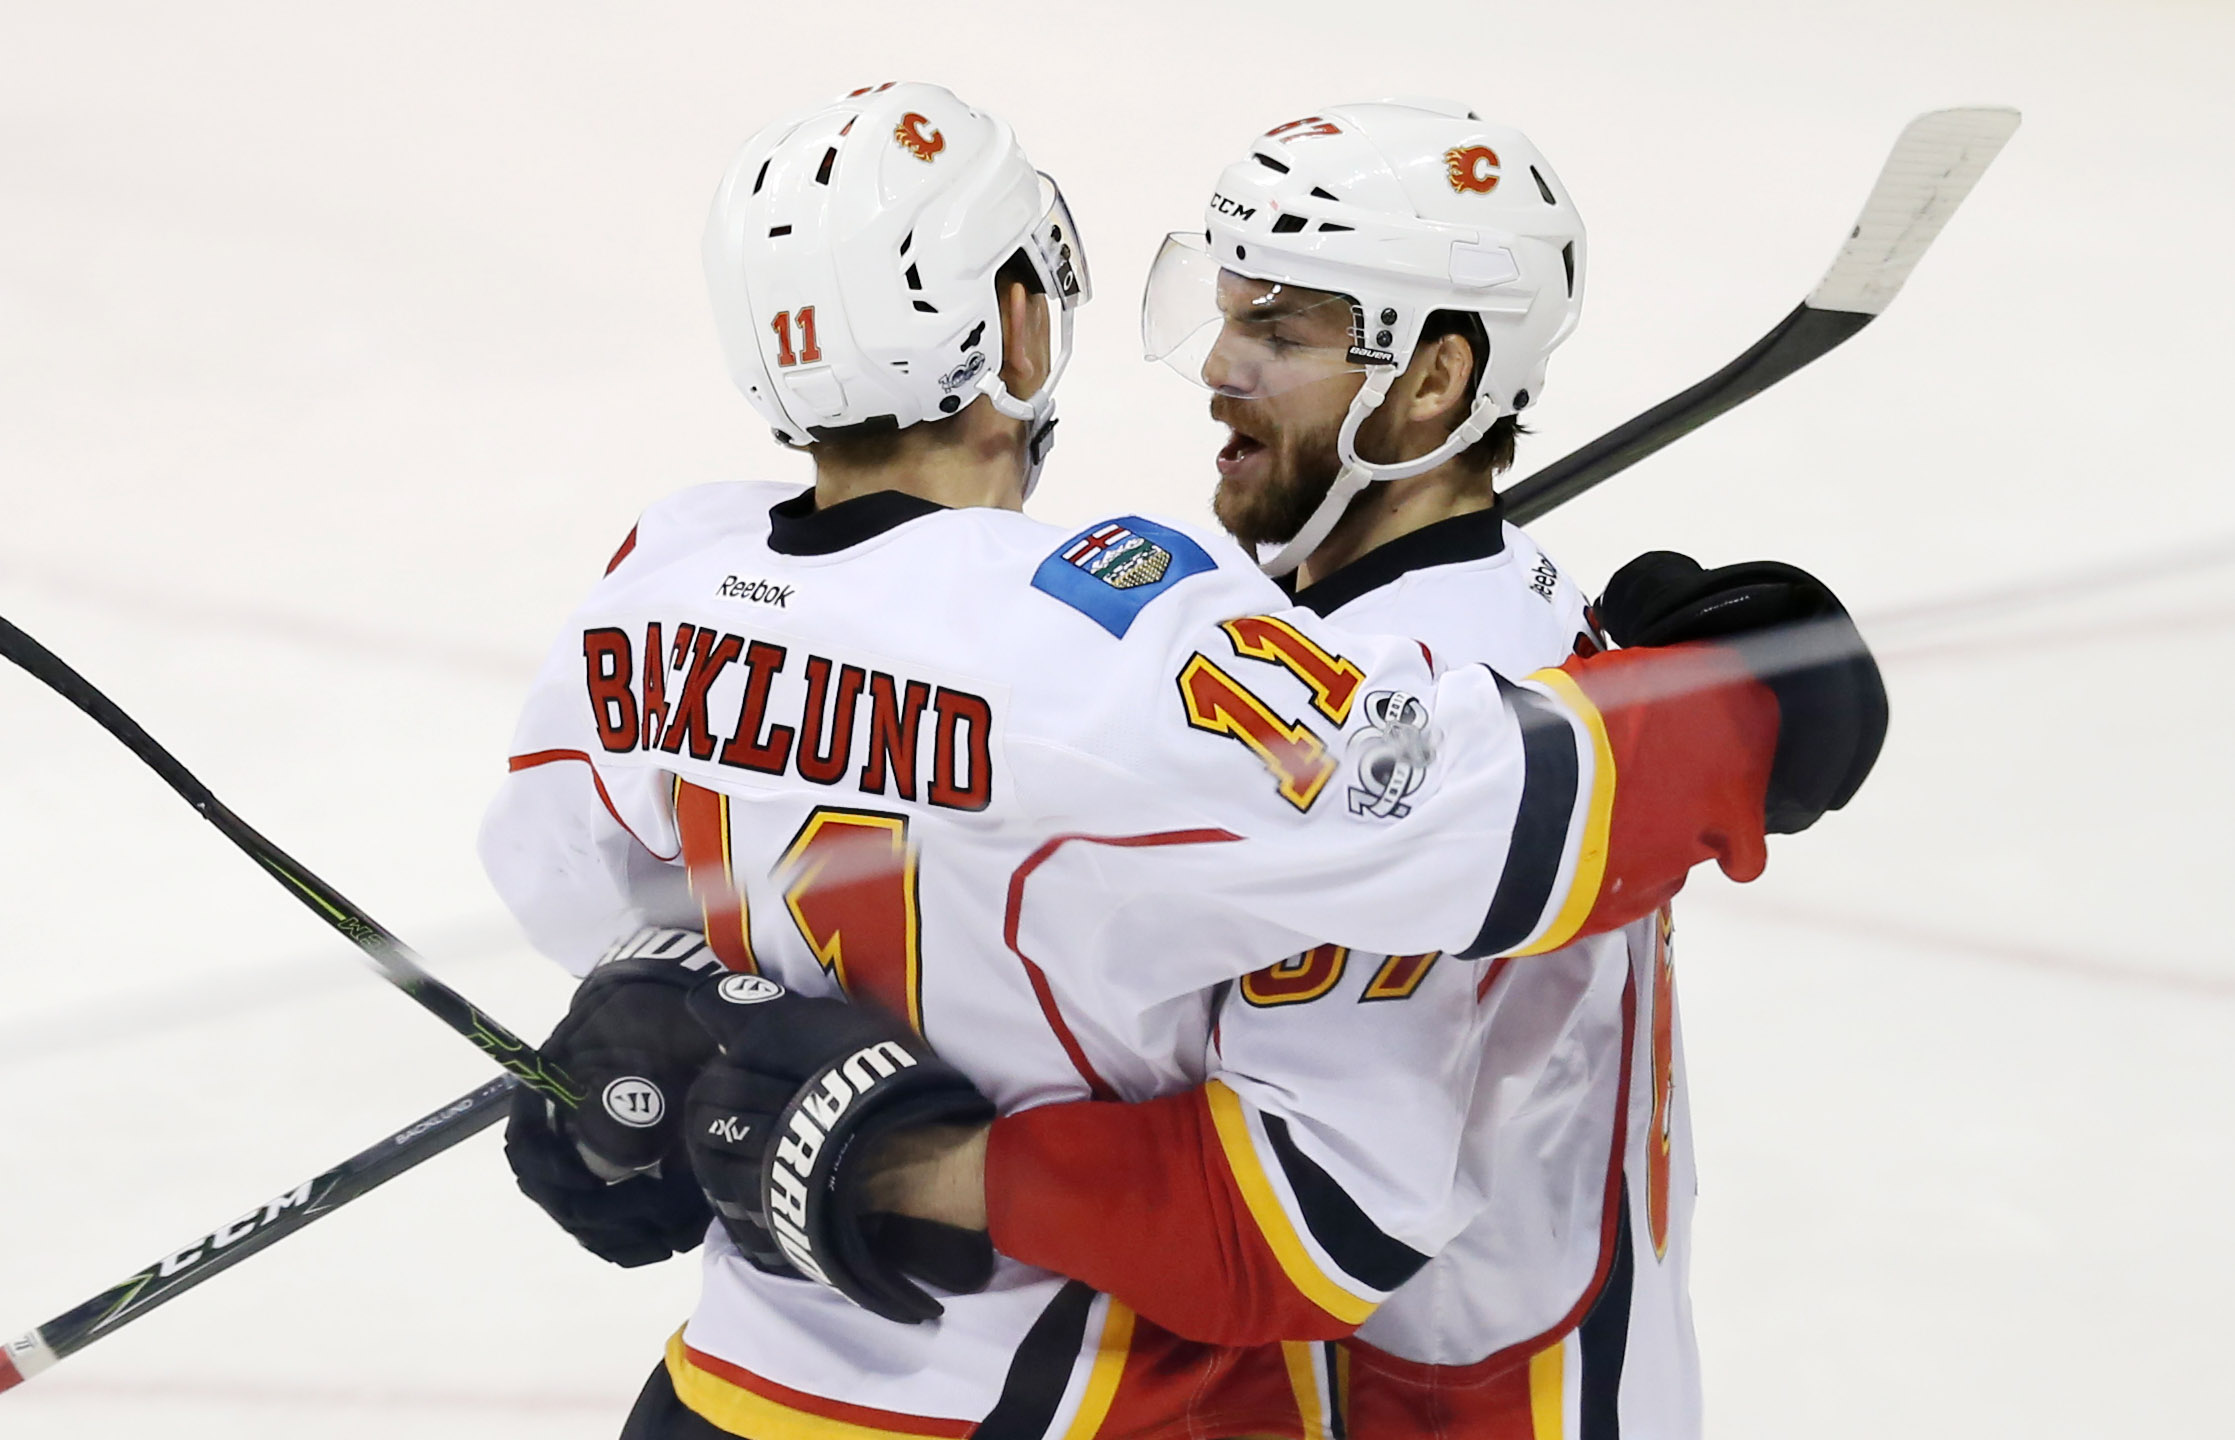 Mikael Backlund, Michael Frolik